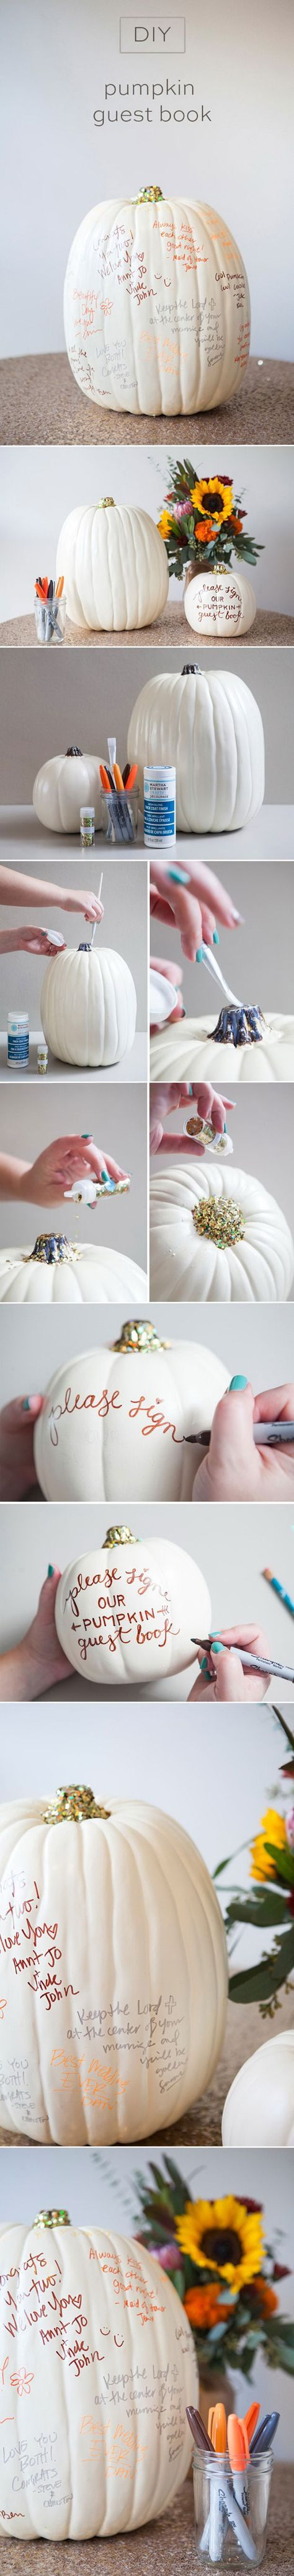 10 DIY Halloween Wedding Decoration Ideas with Pumpkins | Wedding ...